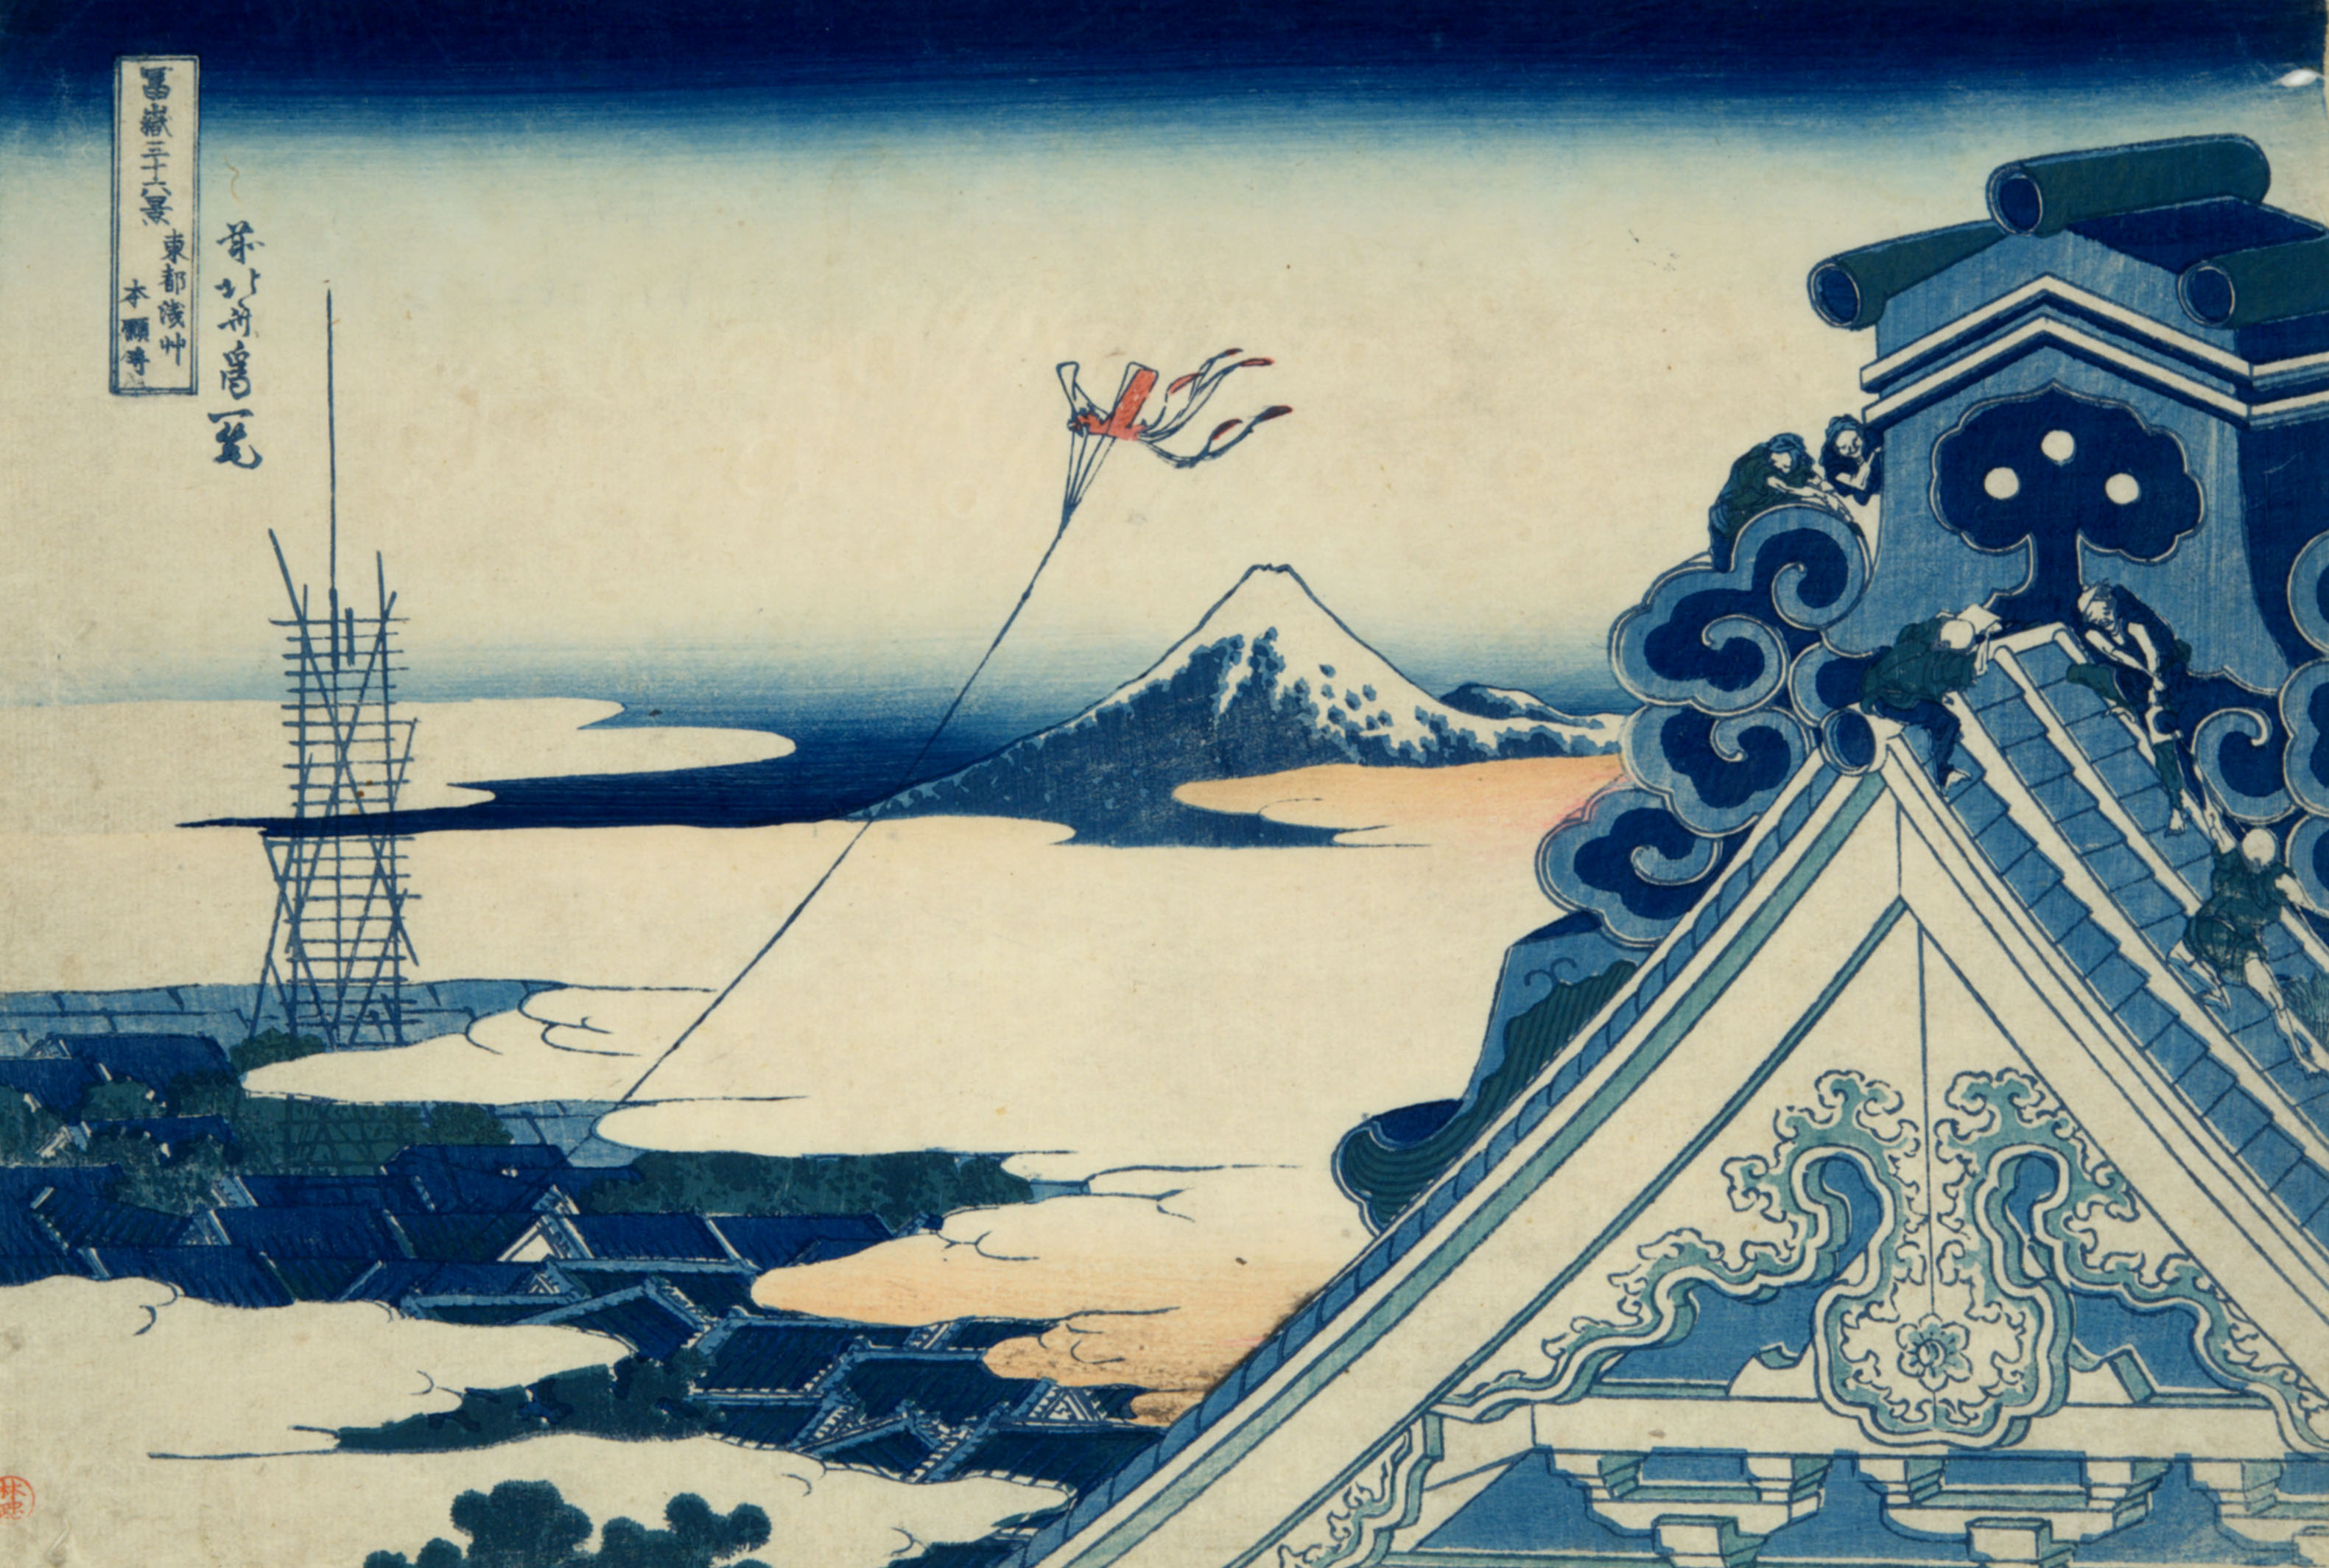 Frank Lloyd Wright Prints Framed Wright And The Architecture Of Japanese Prints Hammer Museum